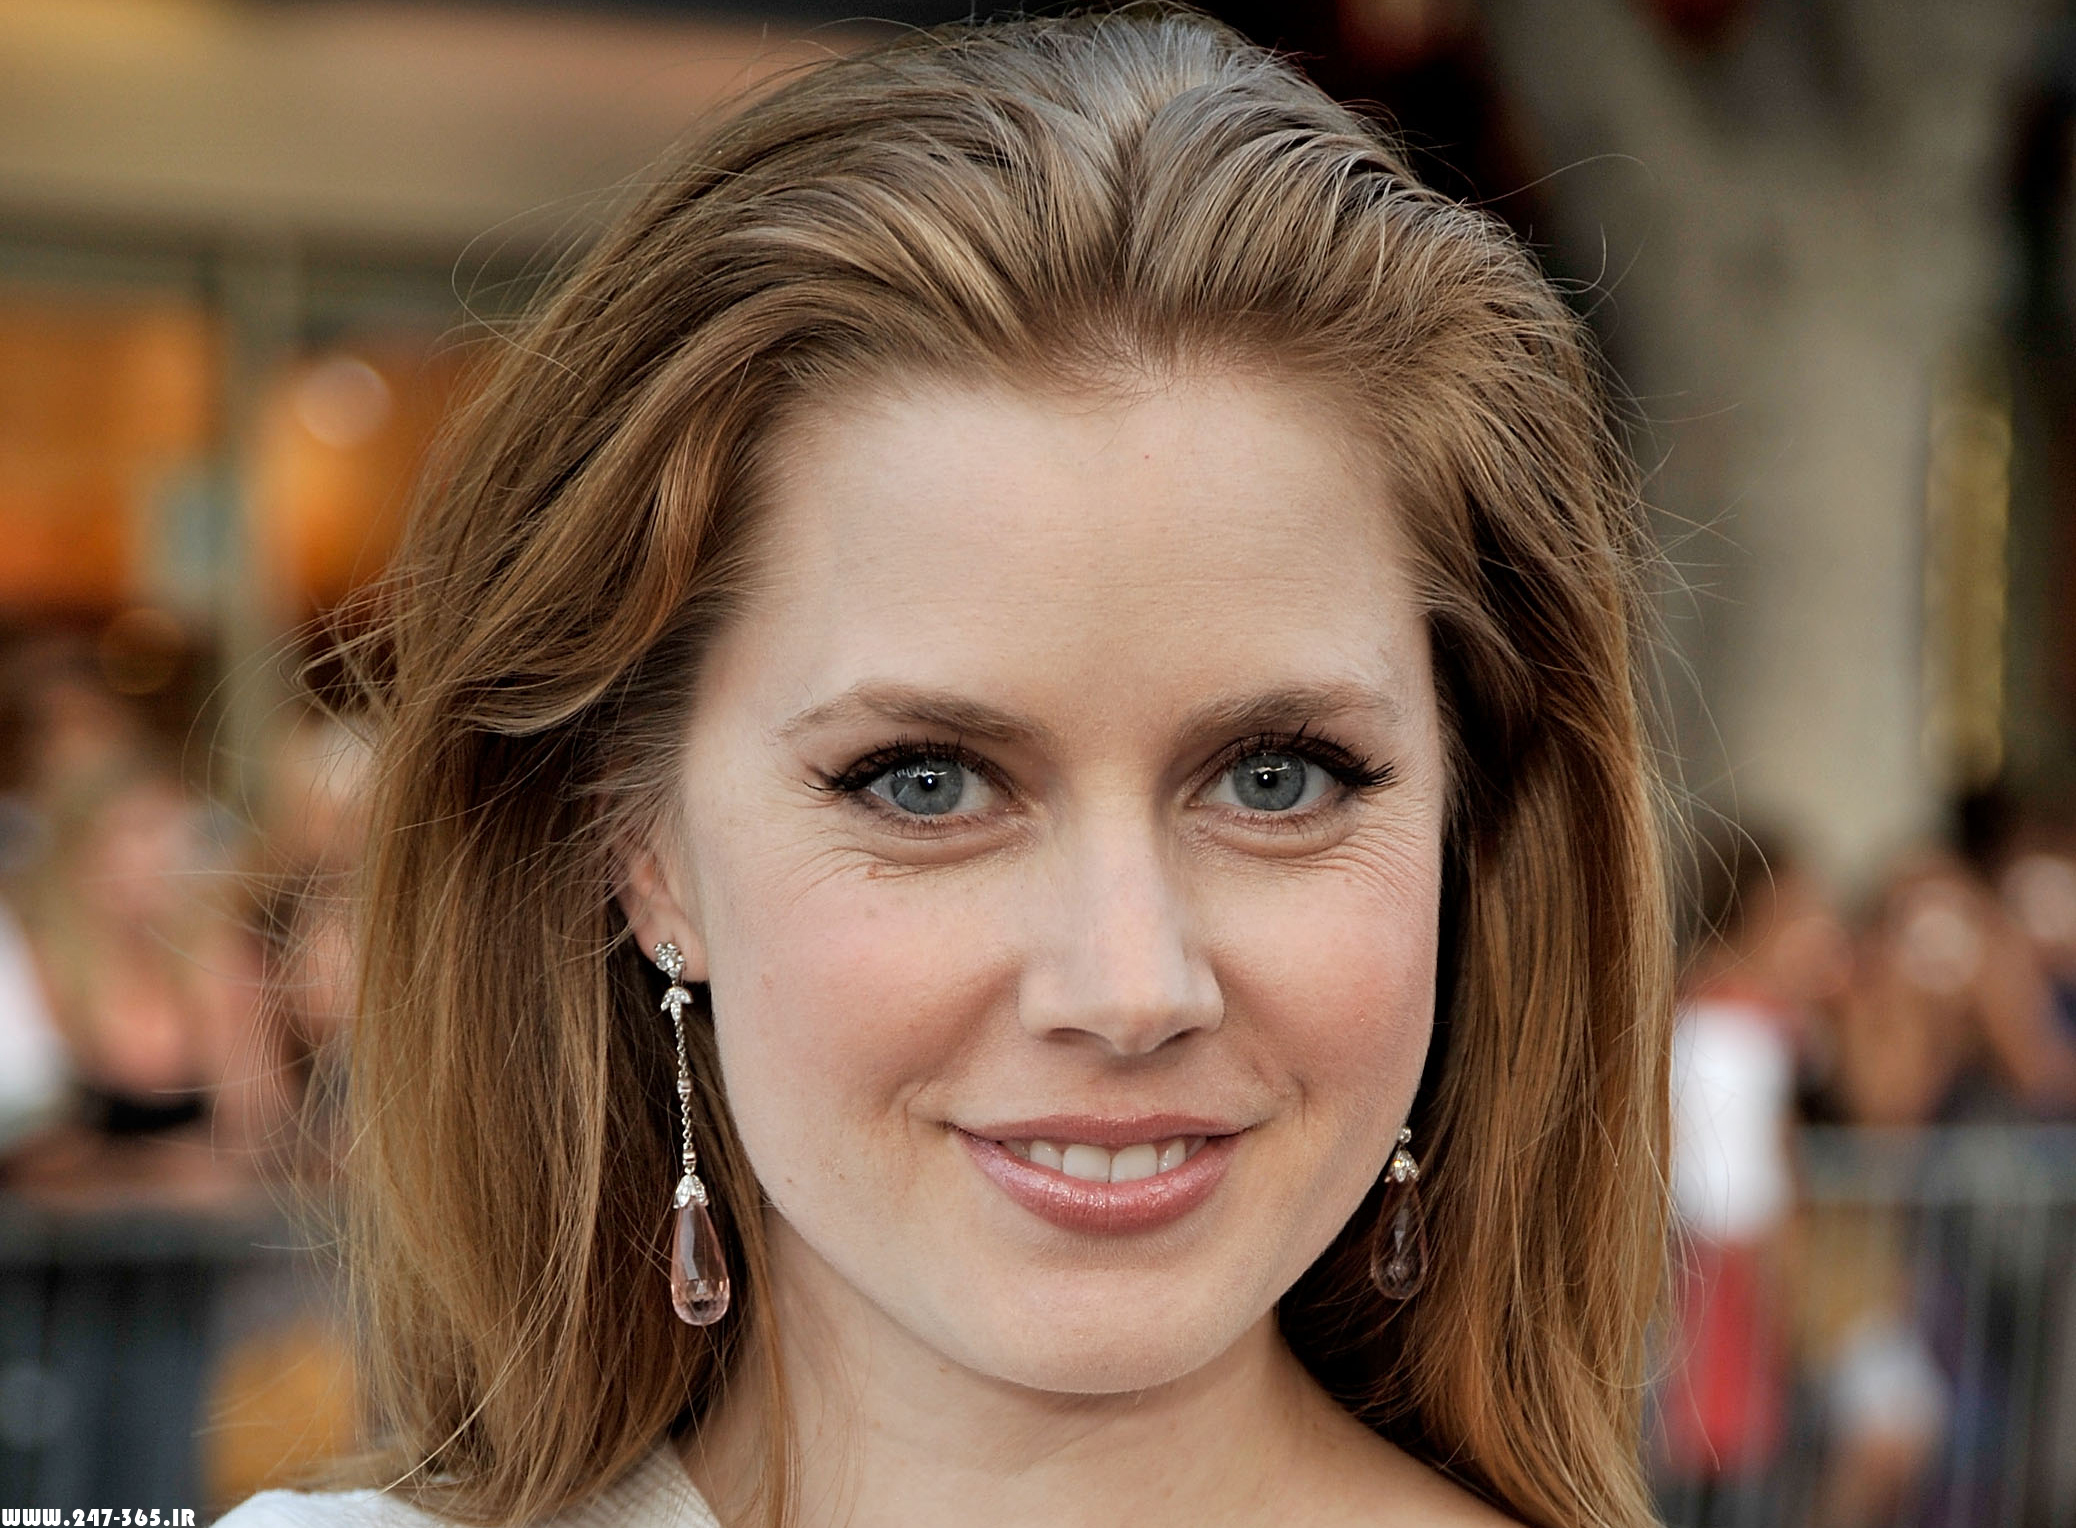 http://dl.247-365.ir/pic/celebrity/amy_adams_2/Amy_Adams_2_01.jpg